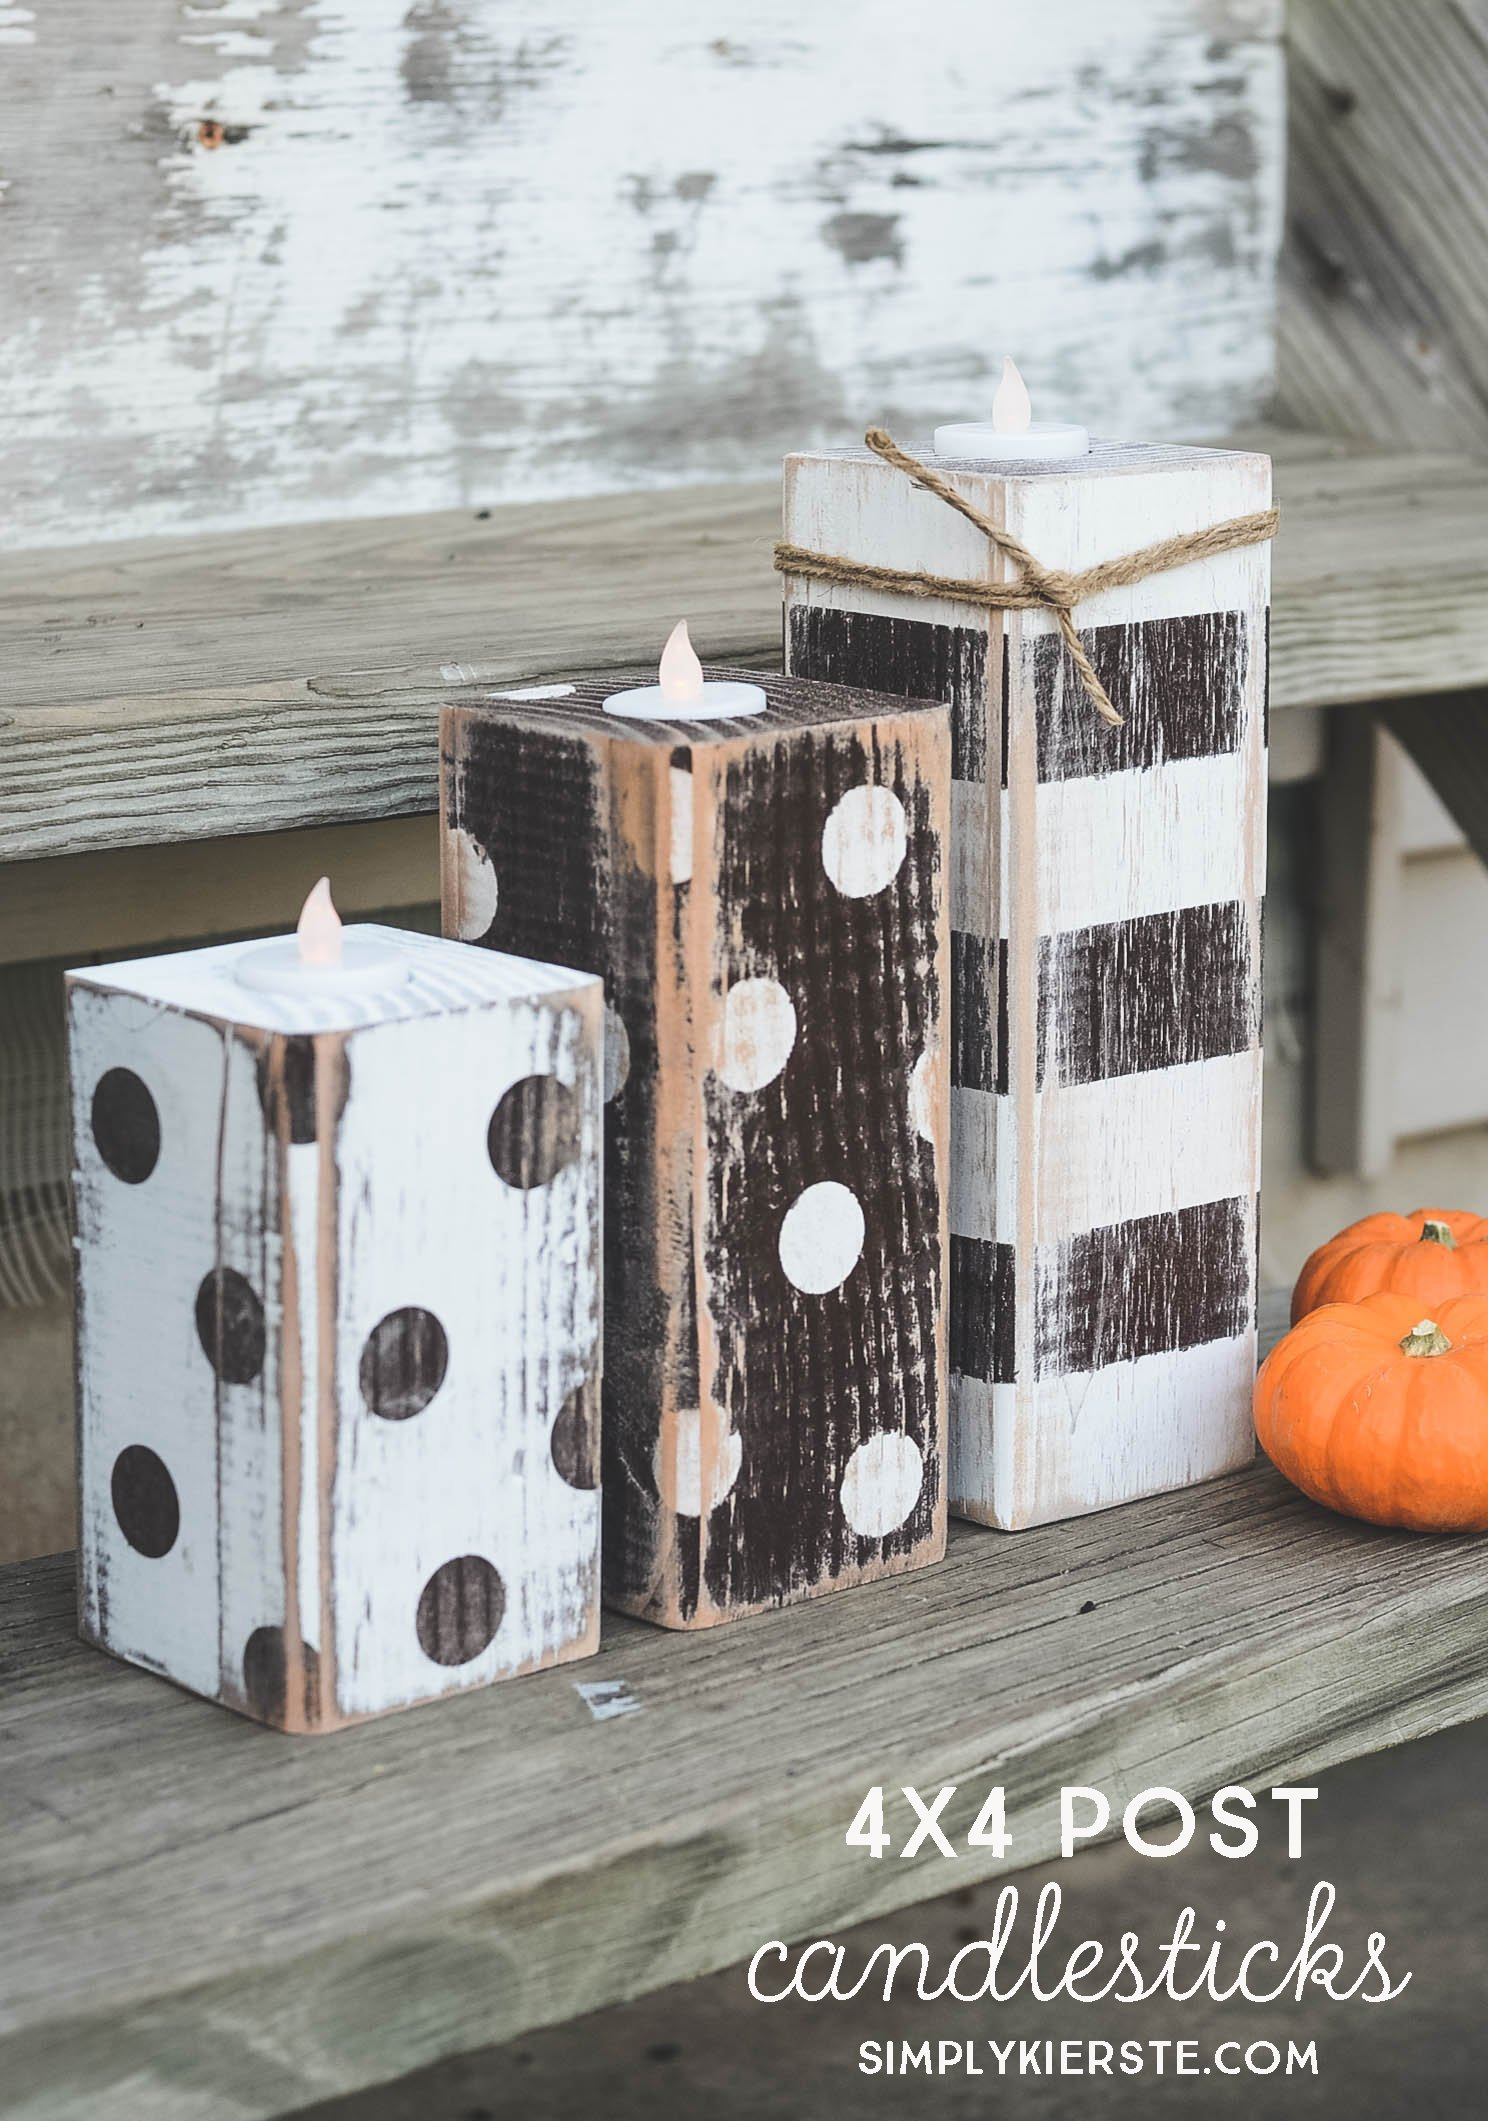 homemade photo book ideas - 4x4 Post Striped & Polka Dot Pumpkins